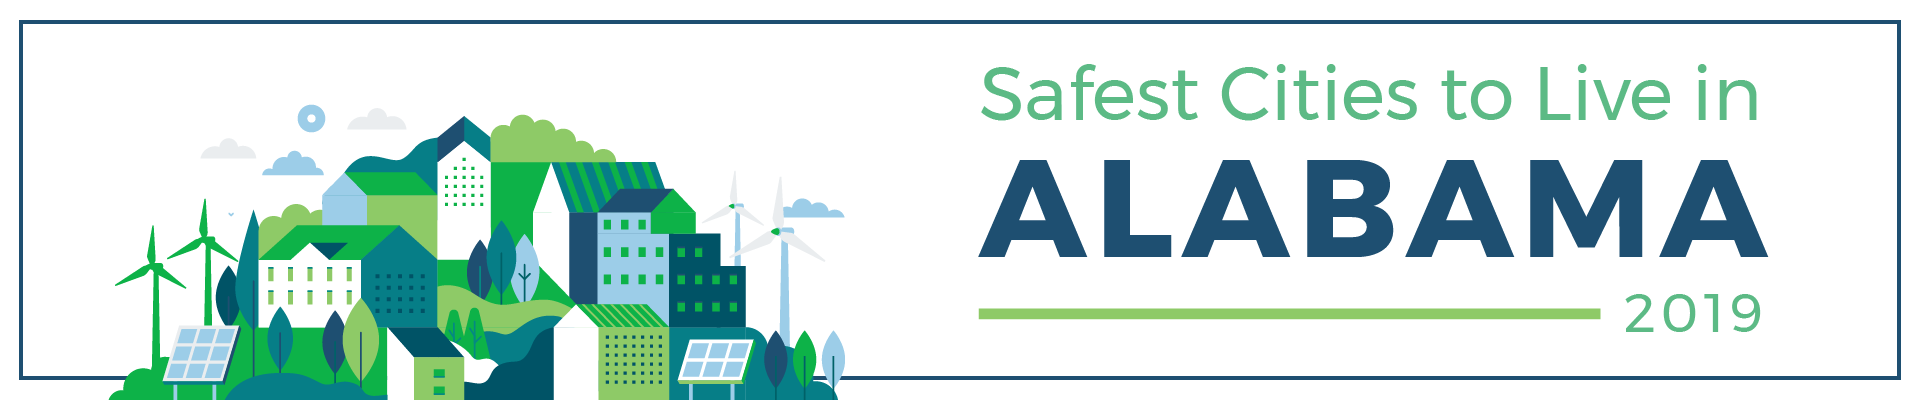 header - safest_cities_alabama_2019